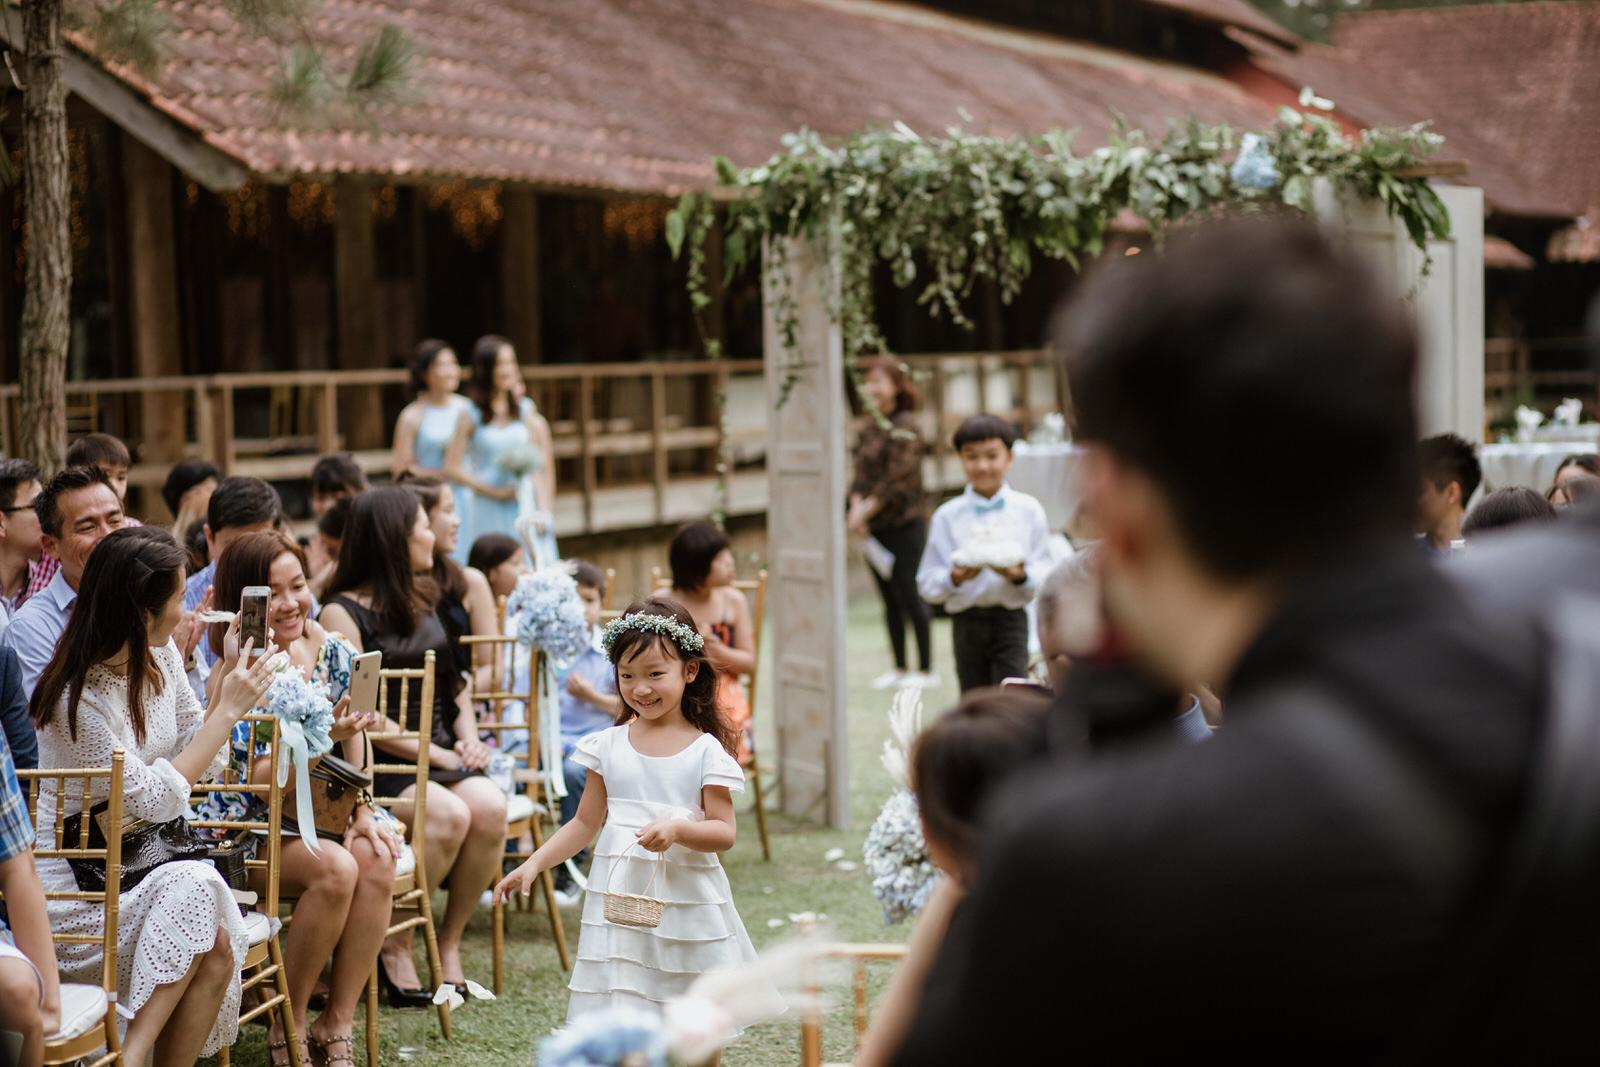 groom and parents march in Tanarimba Rustic Garden Weding Janda baik Decoration Photobooth Cliff Choong Photography